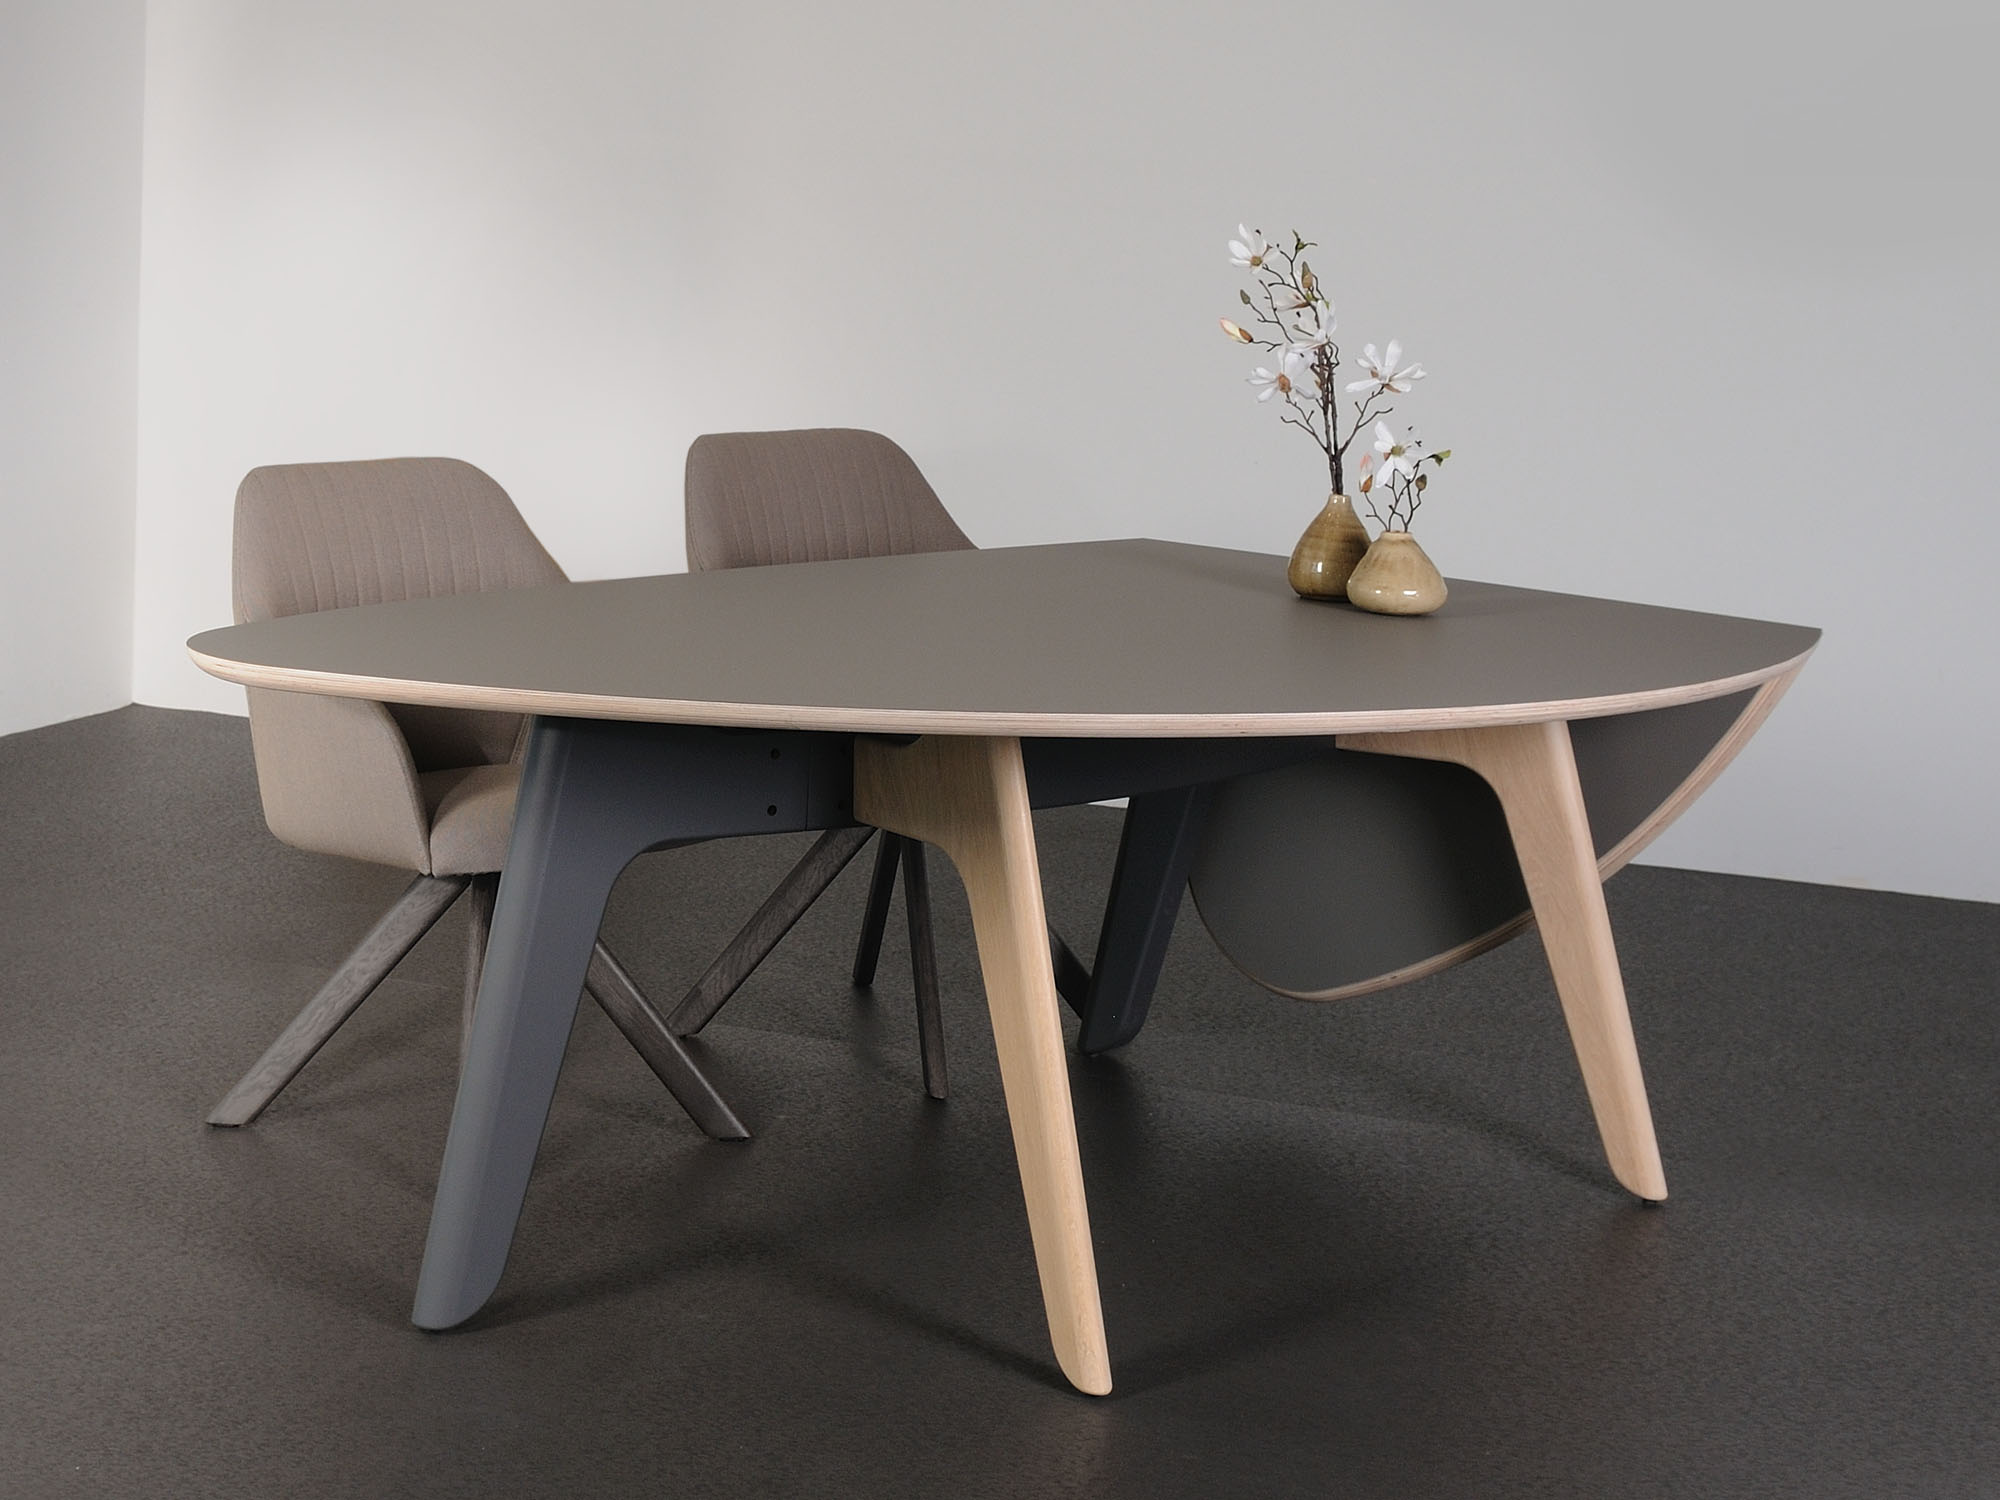 FOLIANT-tafel, ontwerp door Dick Spierenburg